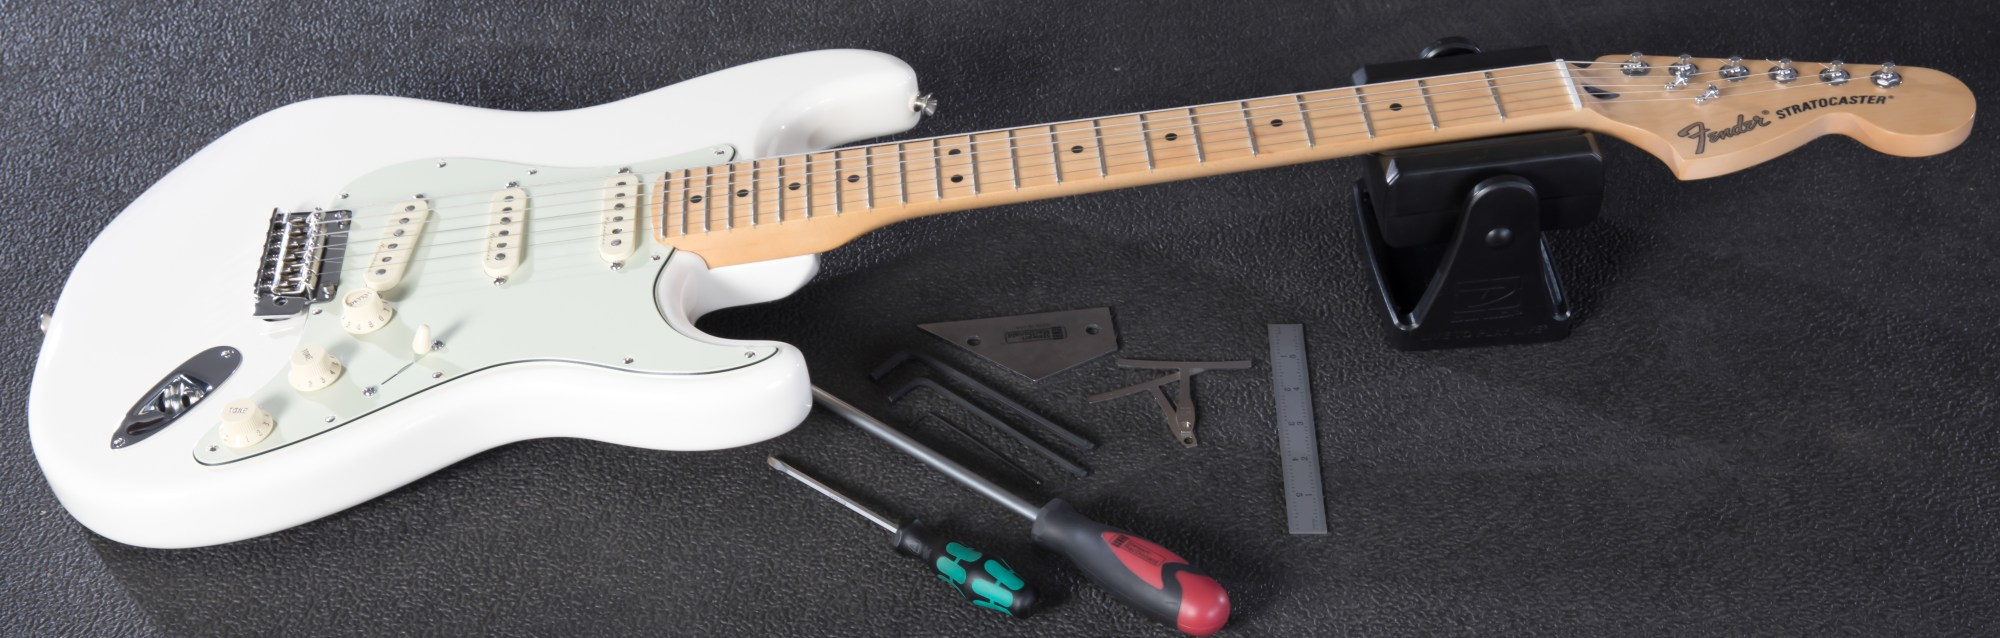 hight resolution of fender strat on workbench next to tools